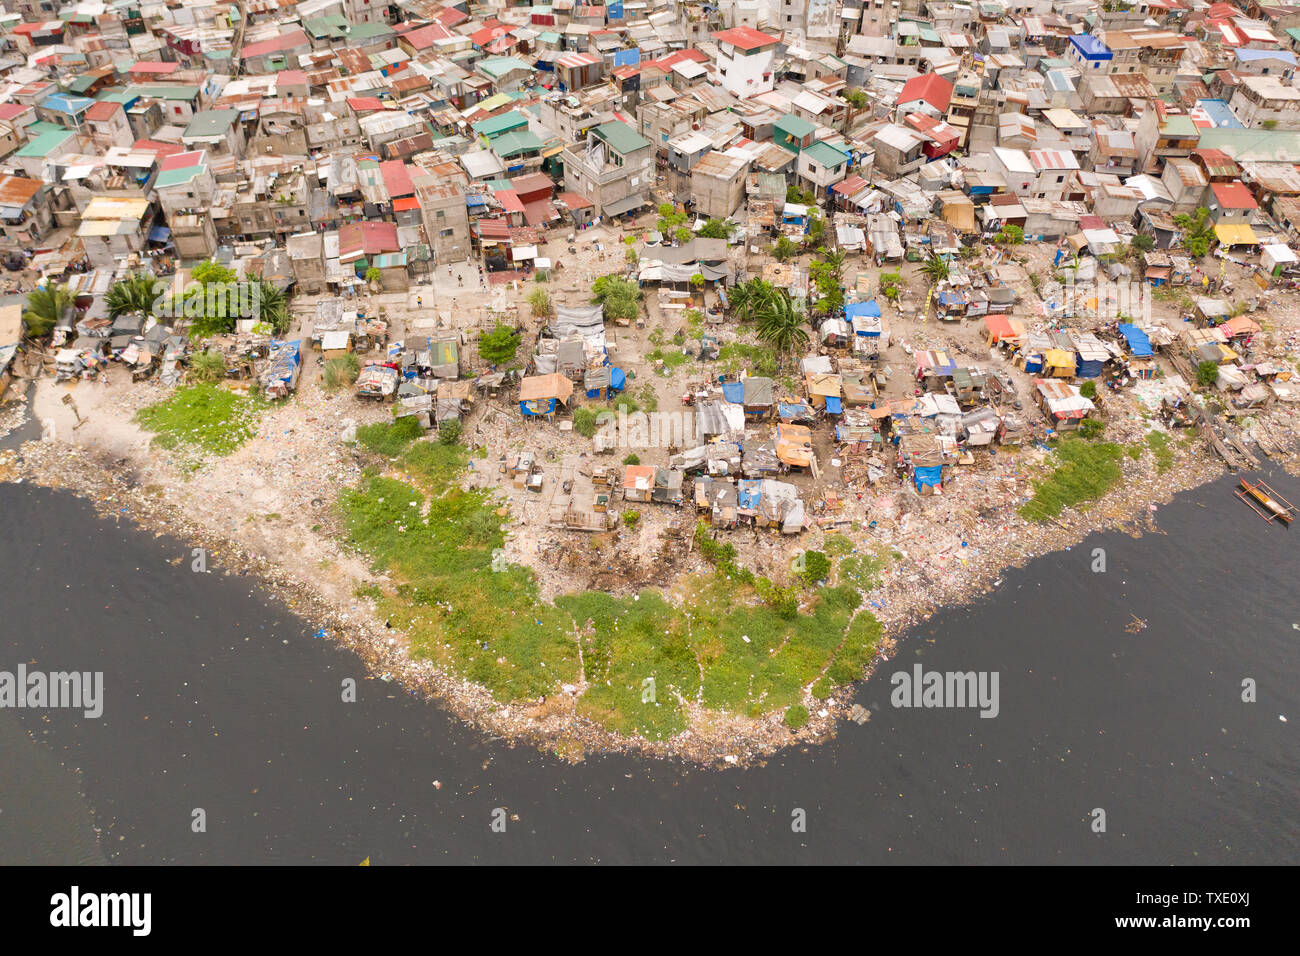 Slums in Manila, a top view. Sea pollution by household waste. Plastic trash on the beach. - Stock Image